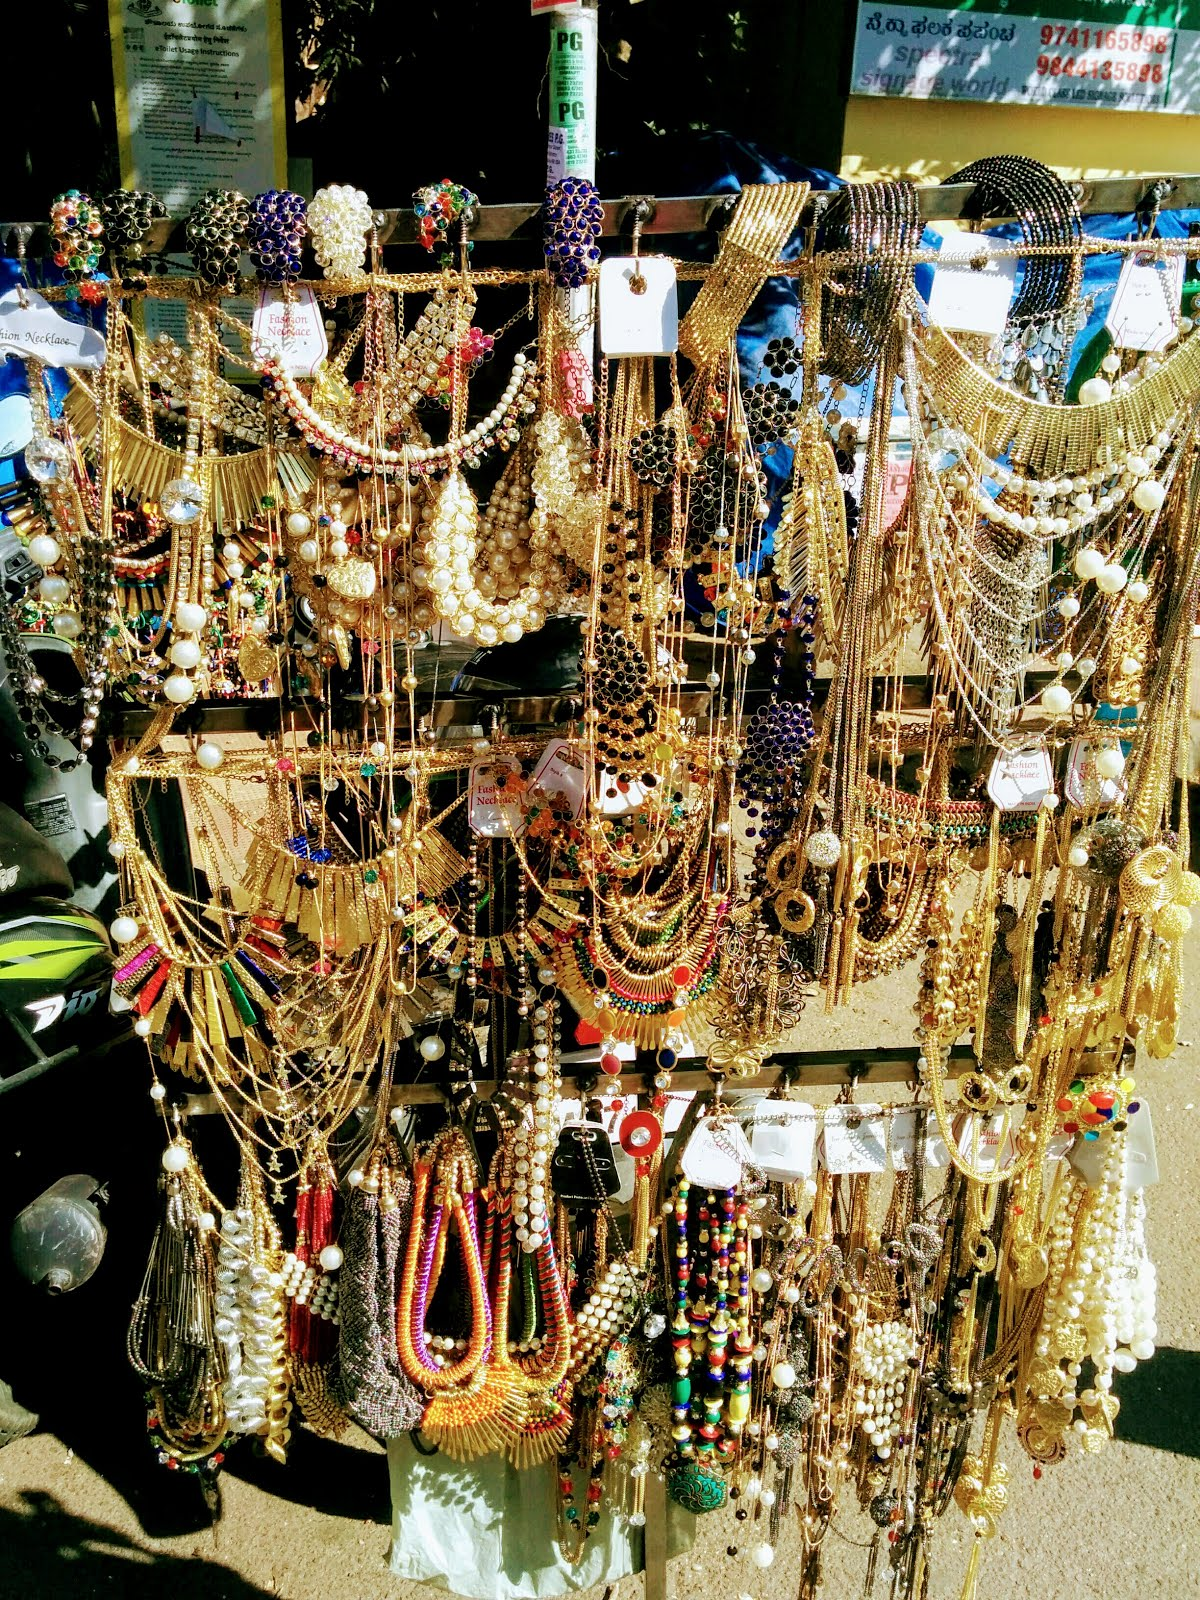 Jewellery Street Action at Kadalekai Parishe, Bangalore